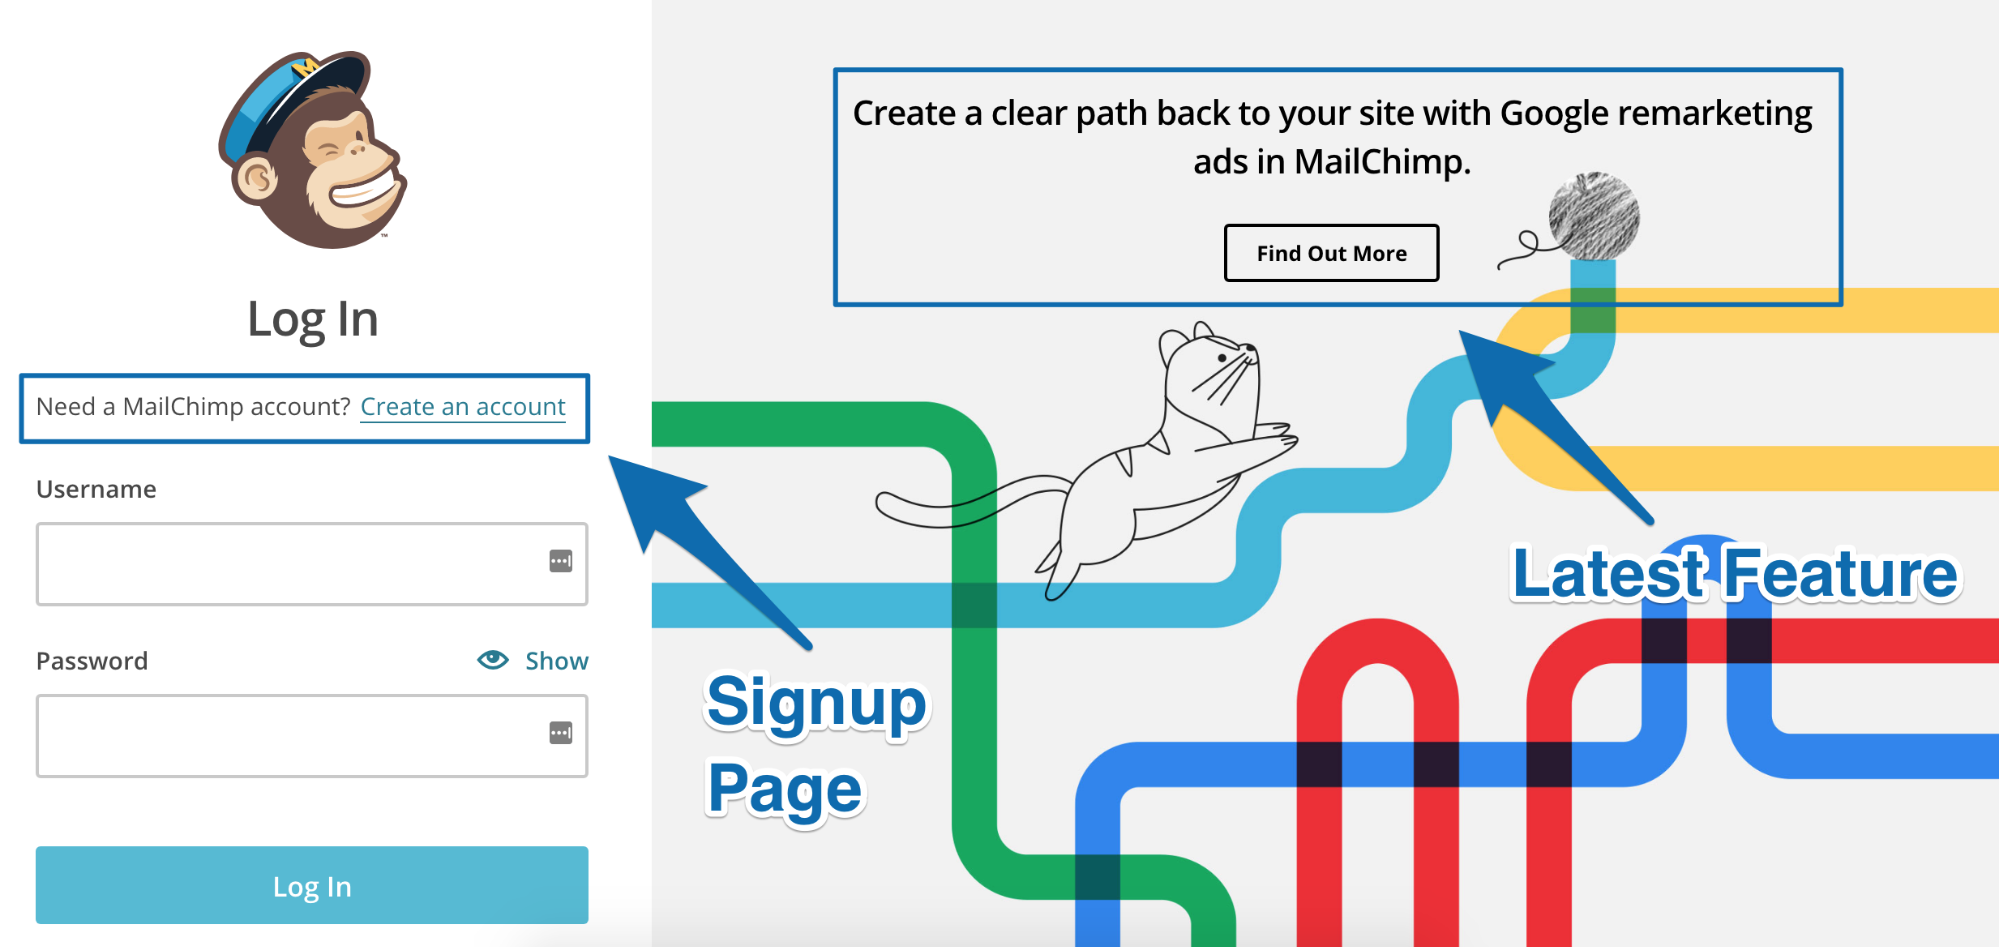 Screenshot showing the login page for mailchimp